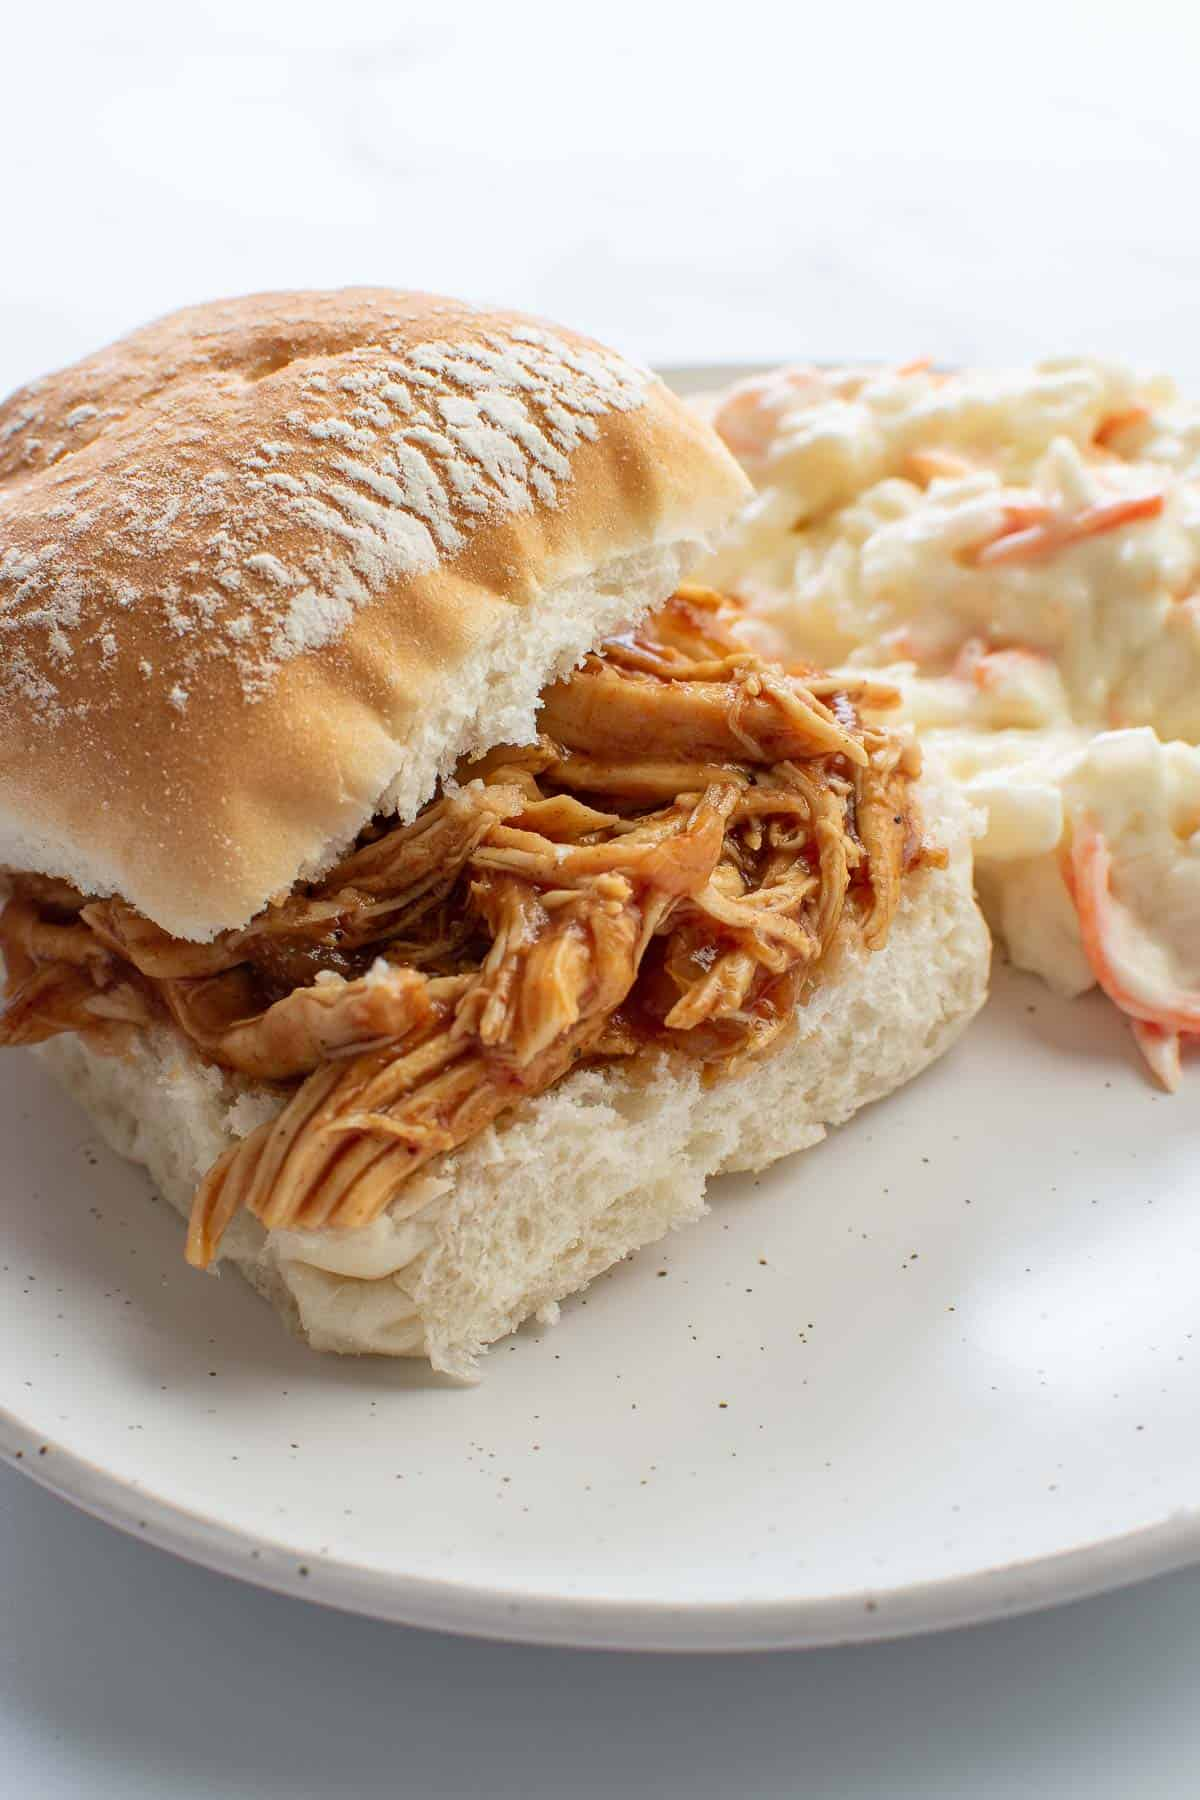 A shredded chicken slider with coleslaw on the side.